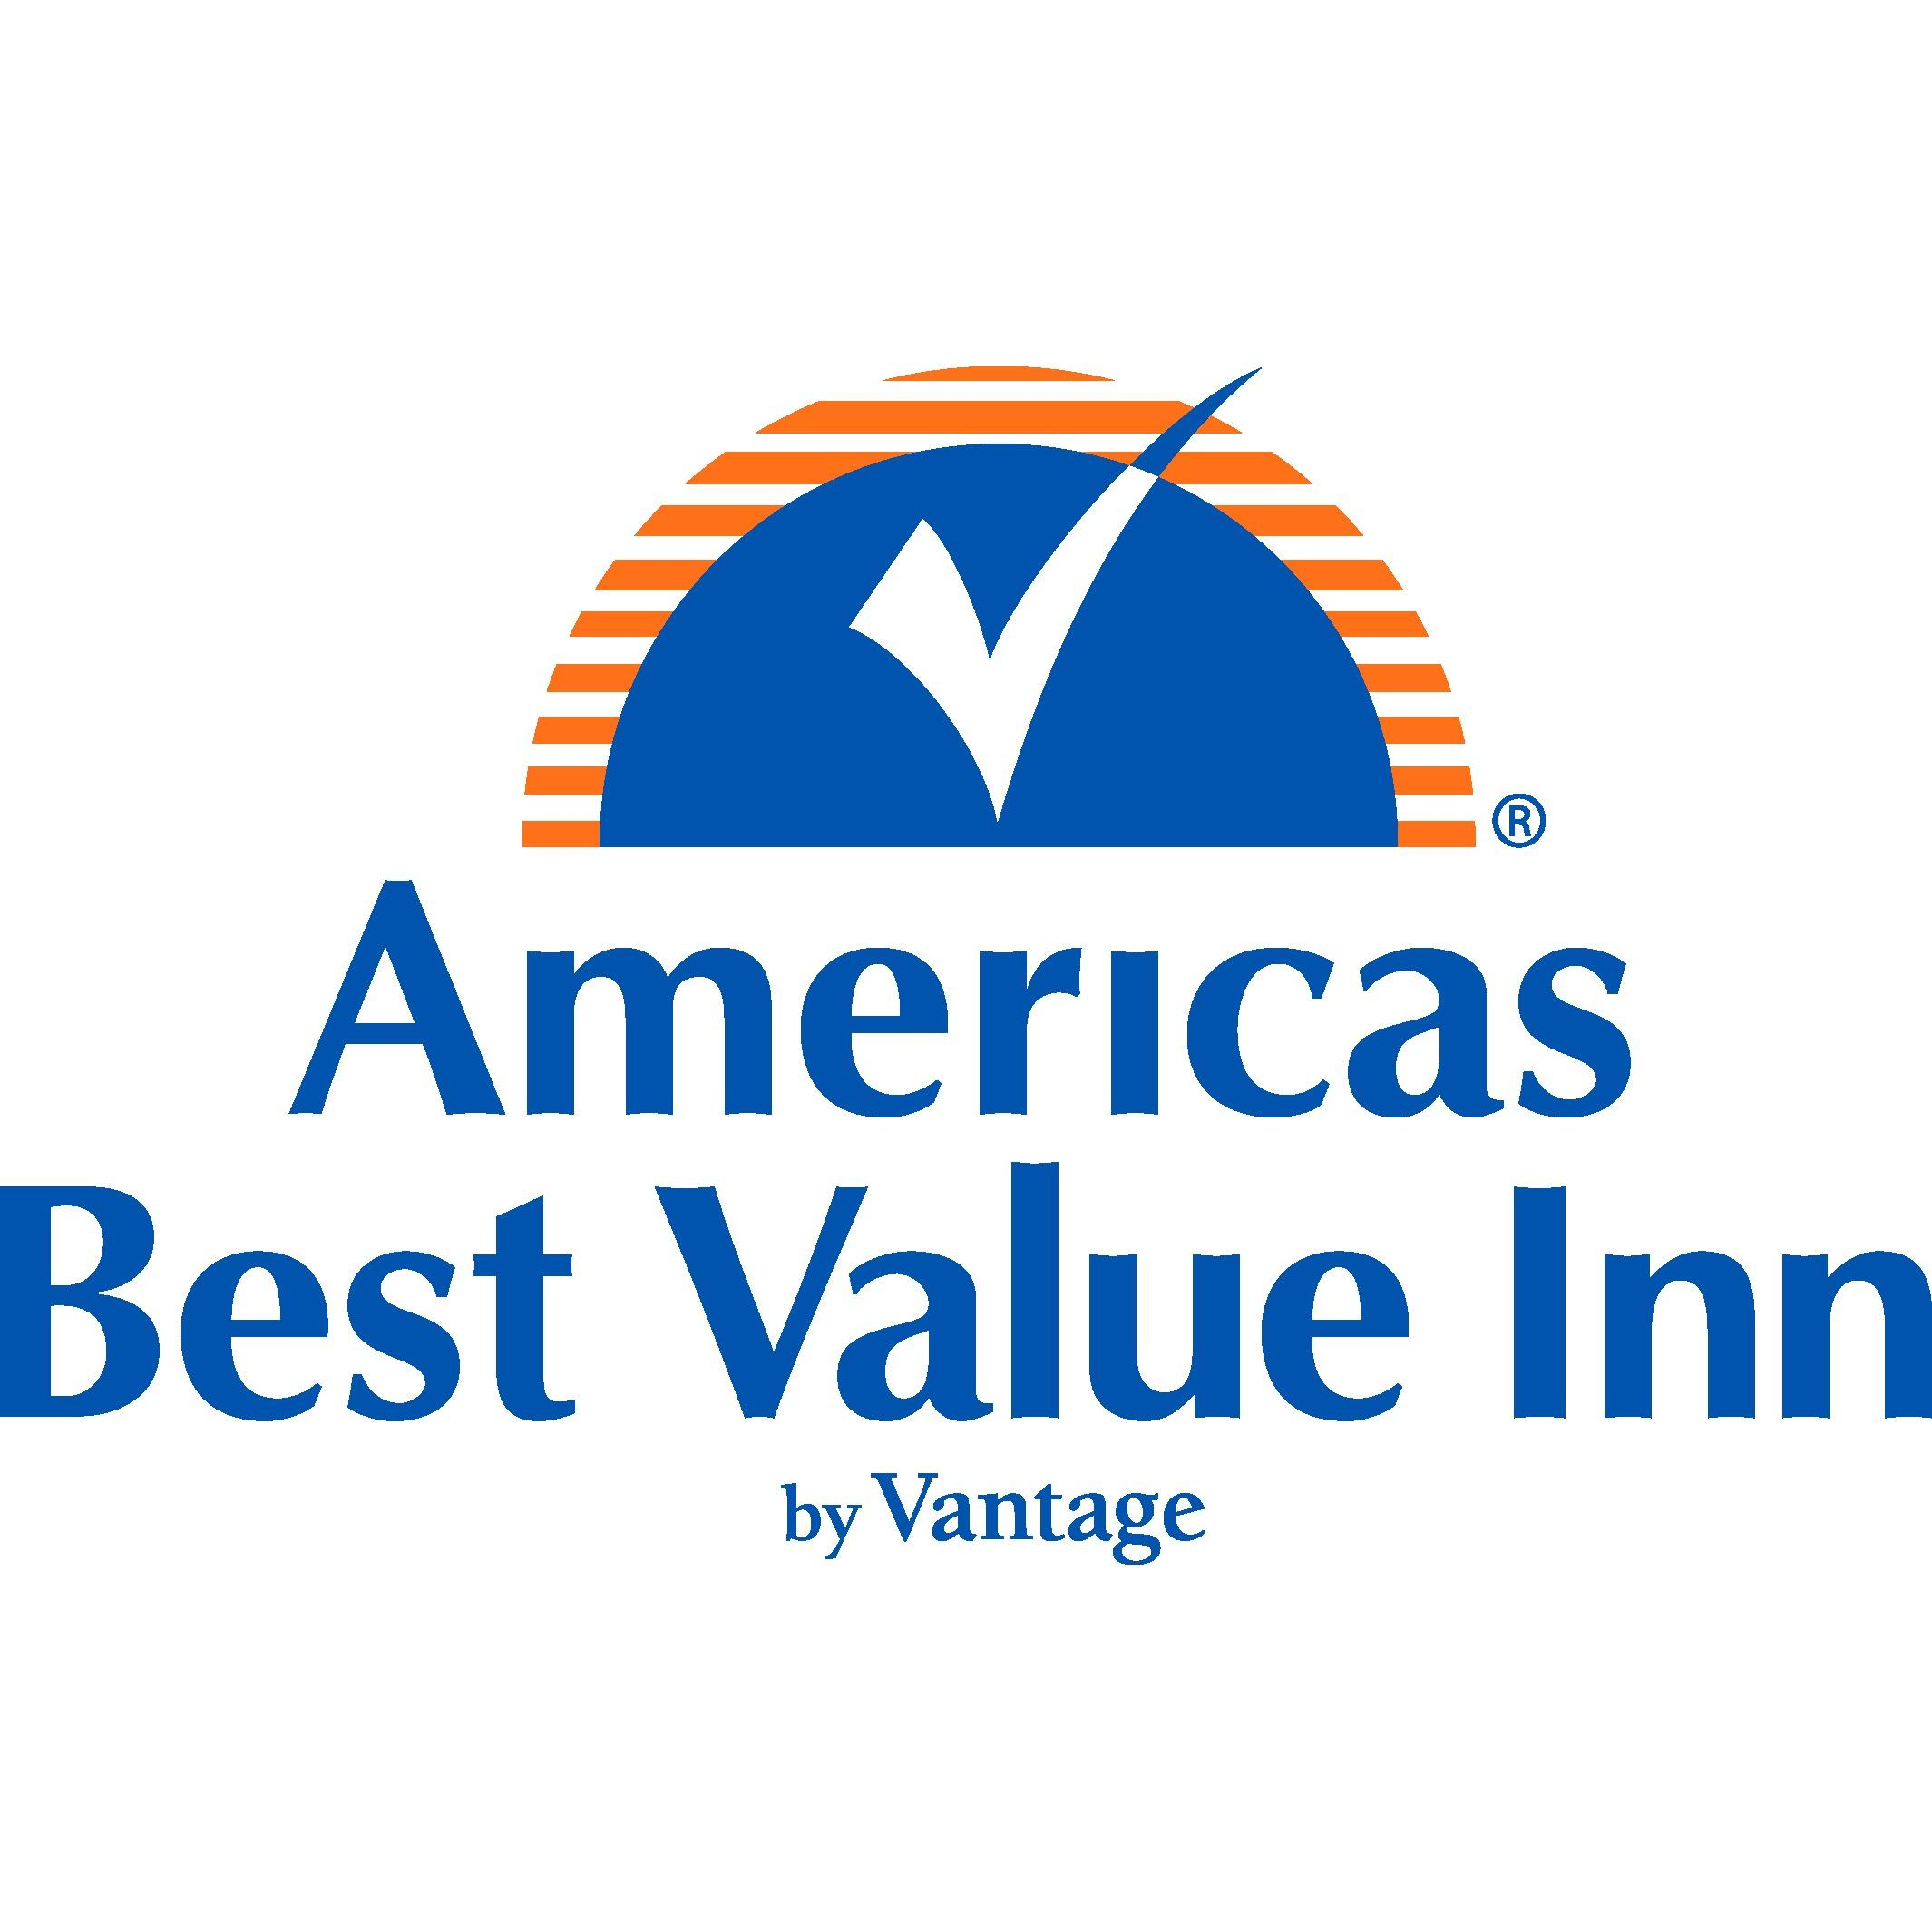 Americas Best Value Inn & Suites - Bush Int'l Airport - Humble, TX - Hotels & Motels